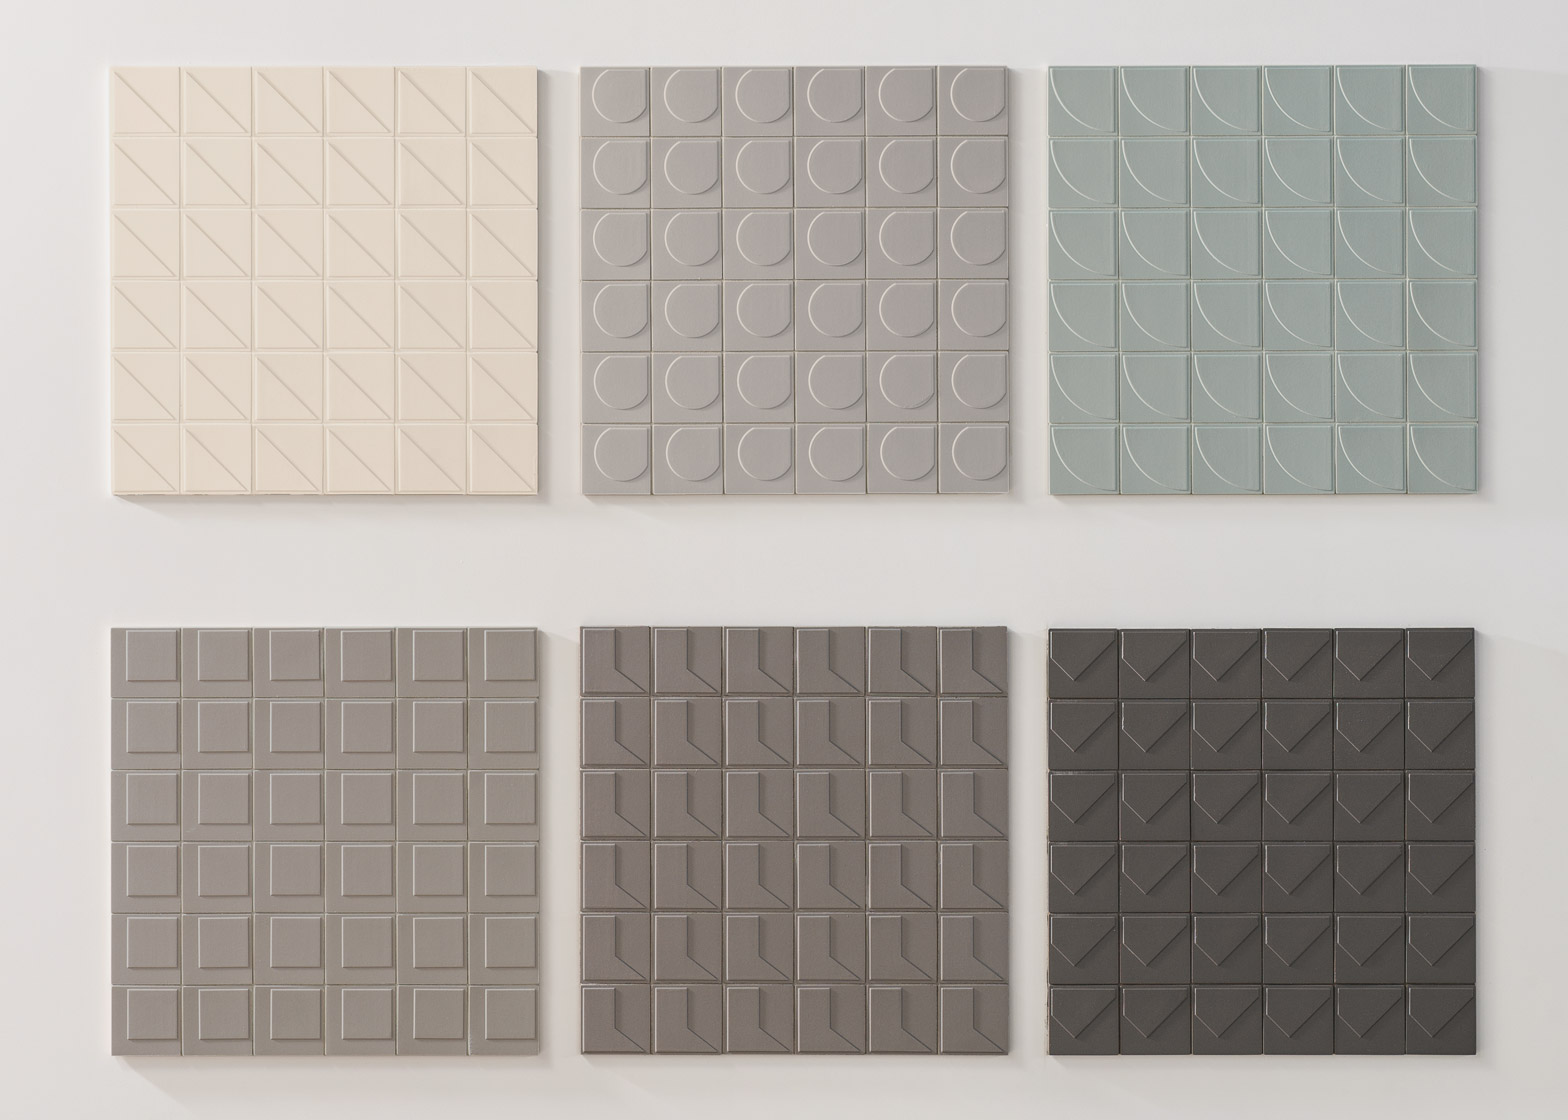 tile-mutina-konstantin-grcic-stockholm-furniture-fair-2016_dezeen_1568_1.jpg